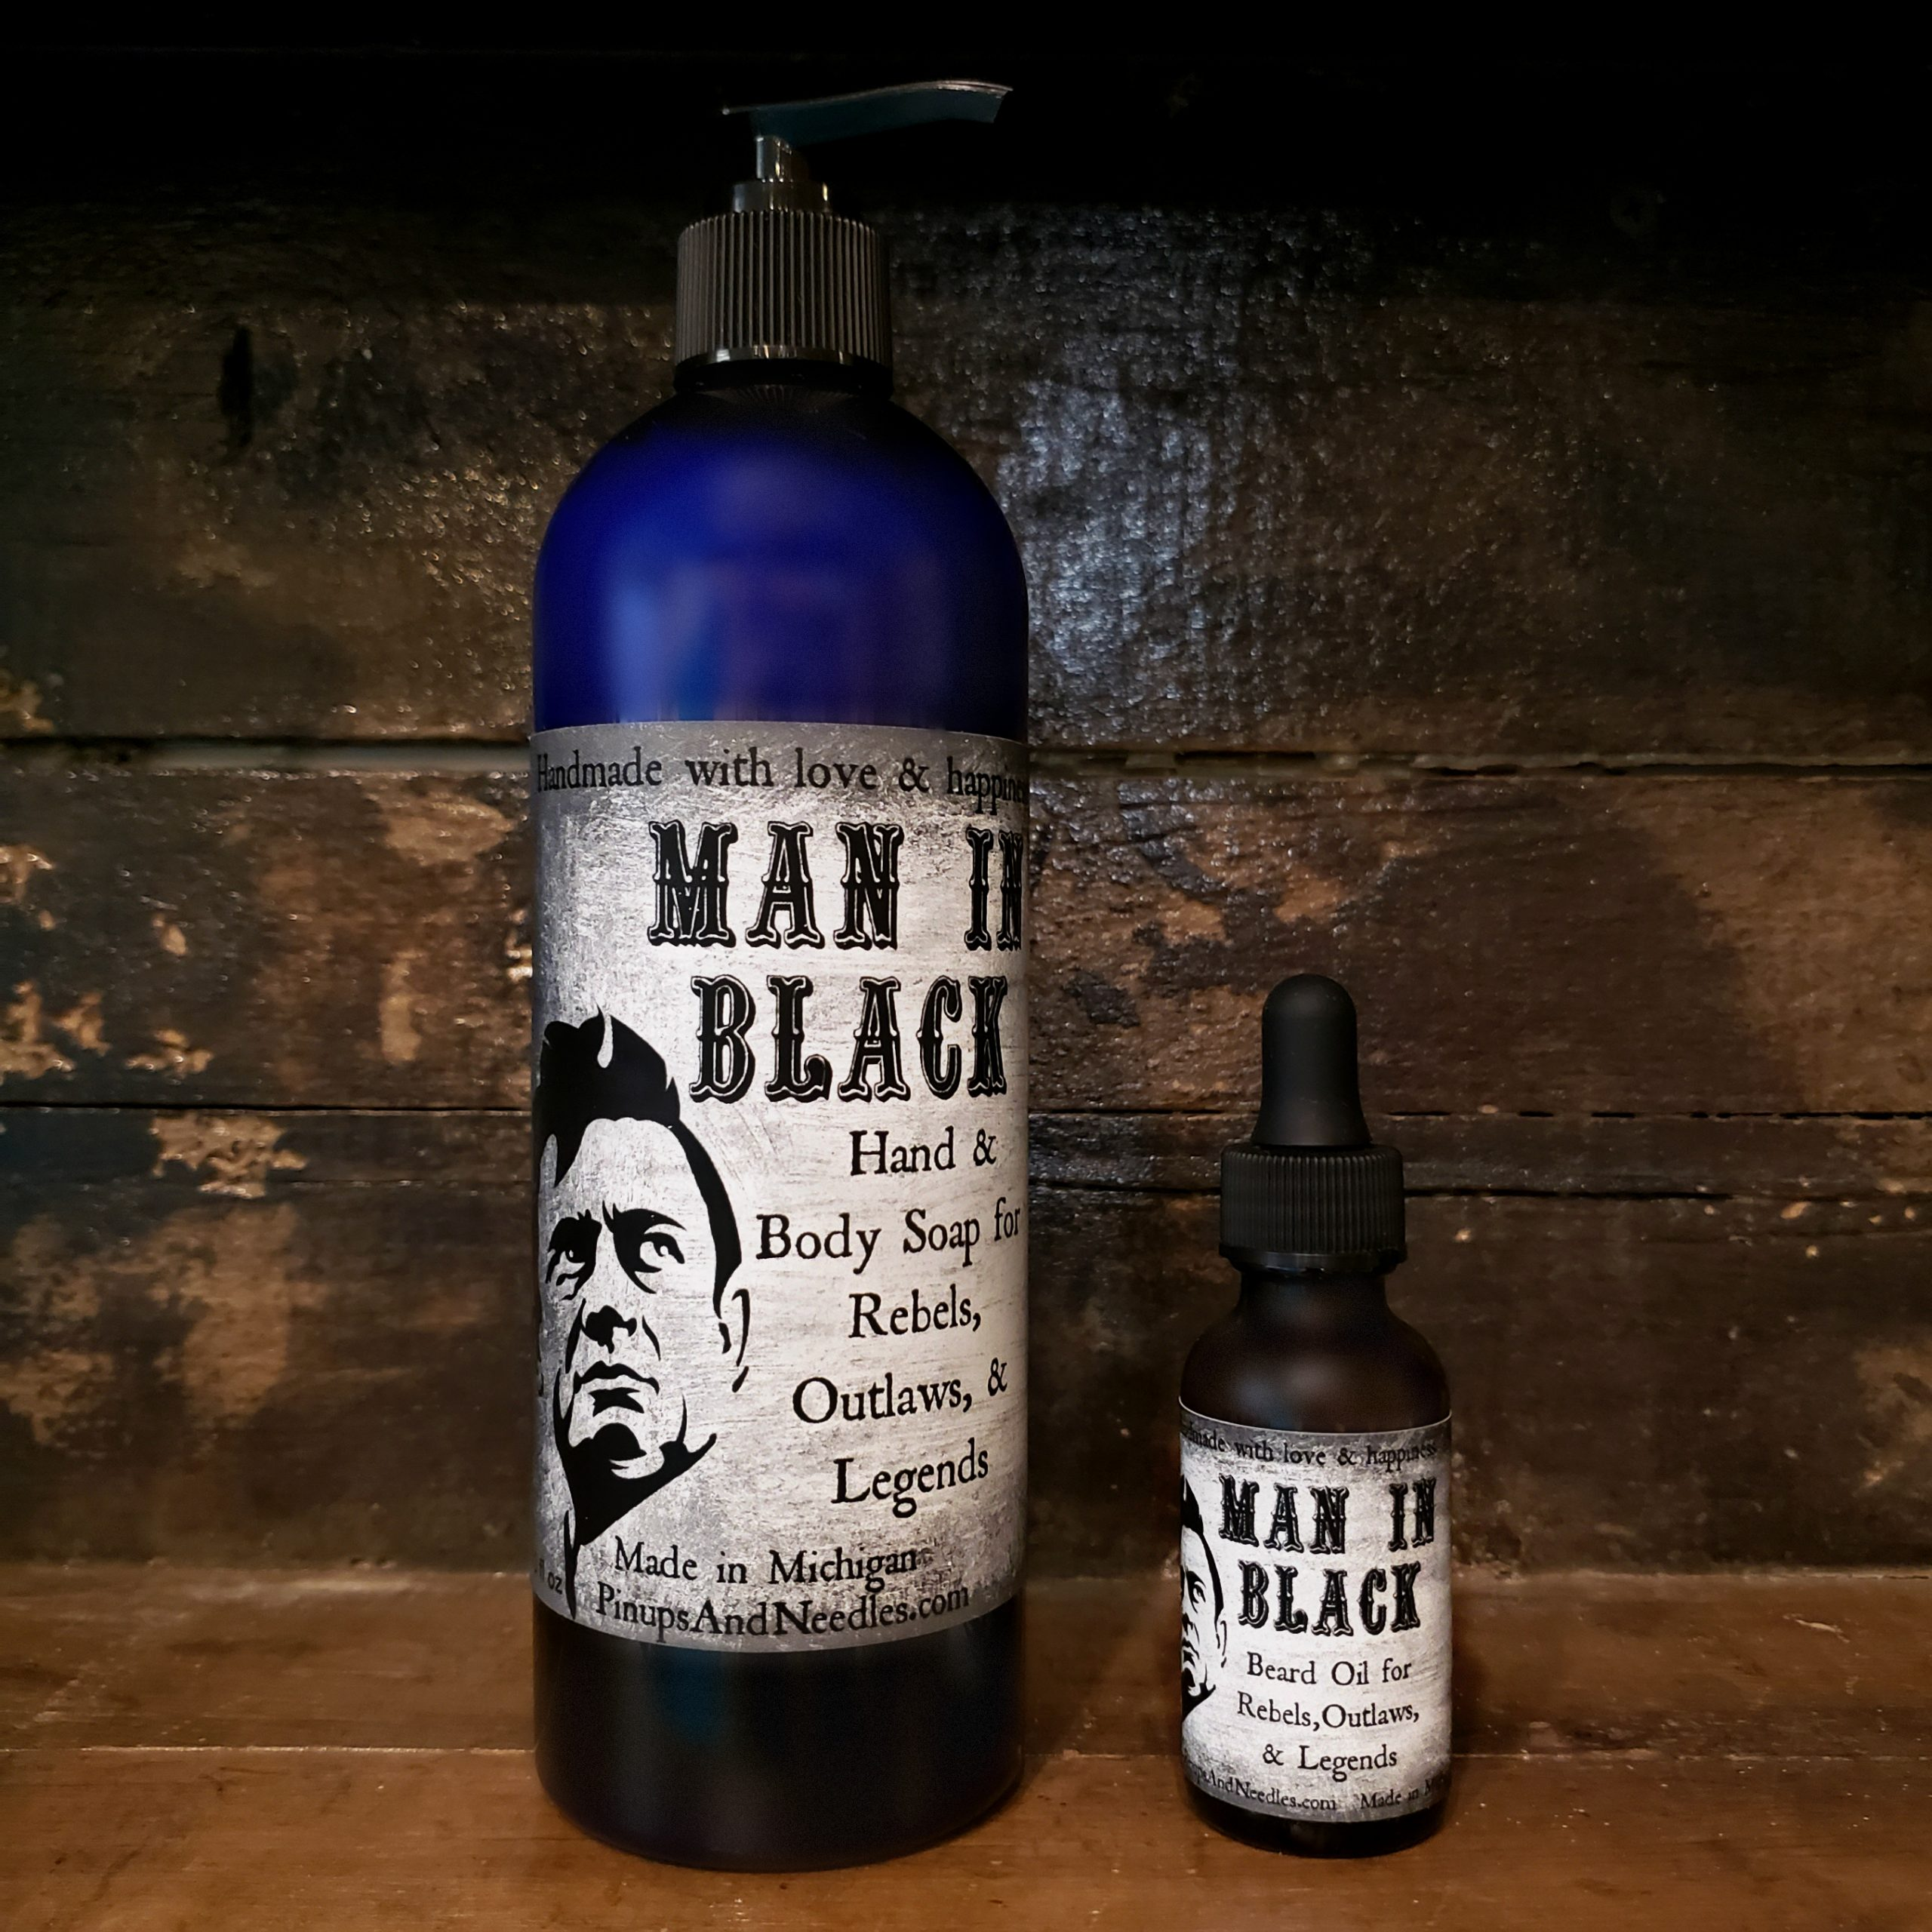 The Man in Black Gift Box Man in Black: Hand & Body Wash for Rebels, Outlaws, & Legends Man in Black: Beard Oil for Rebels, Outlaws, & Legends